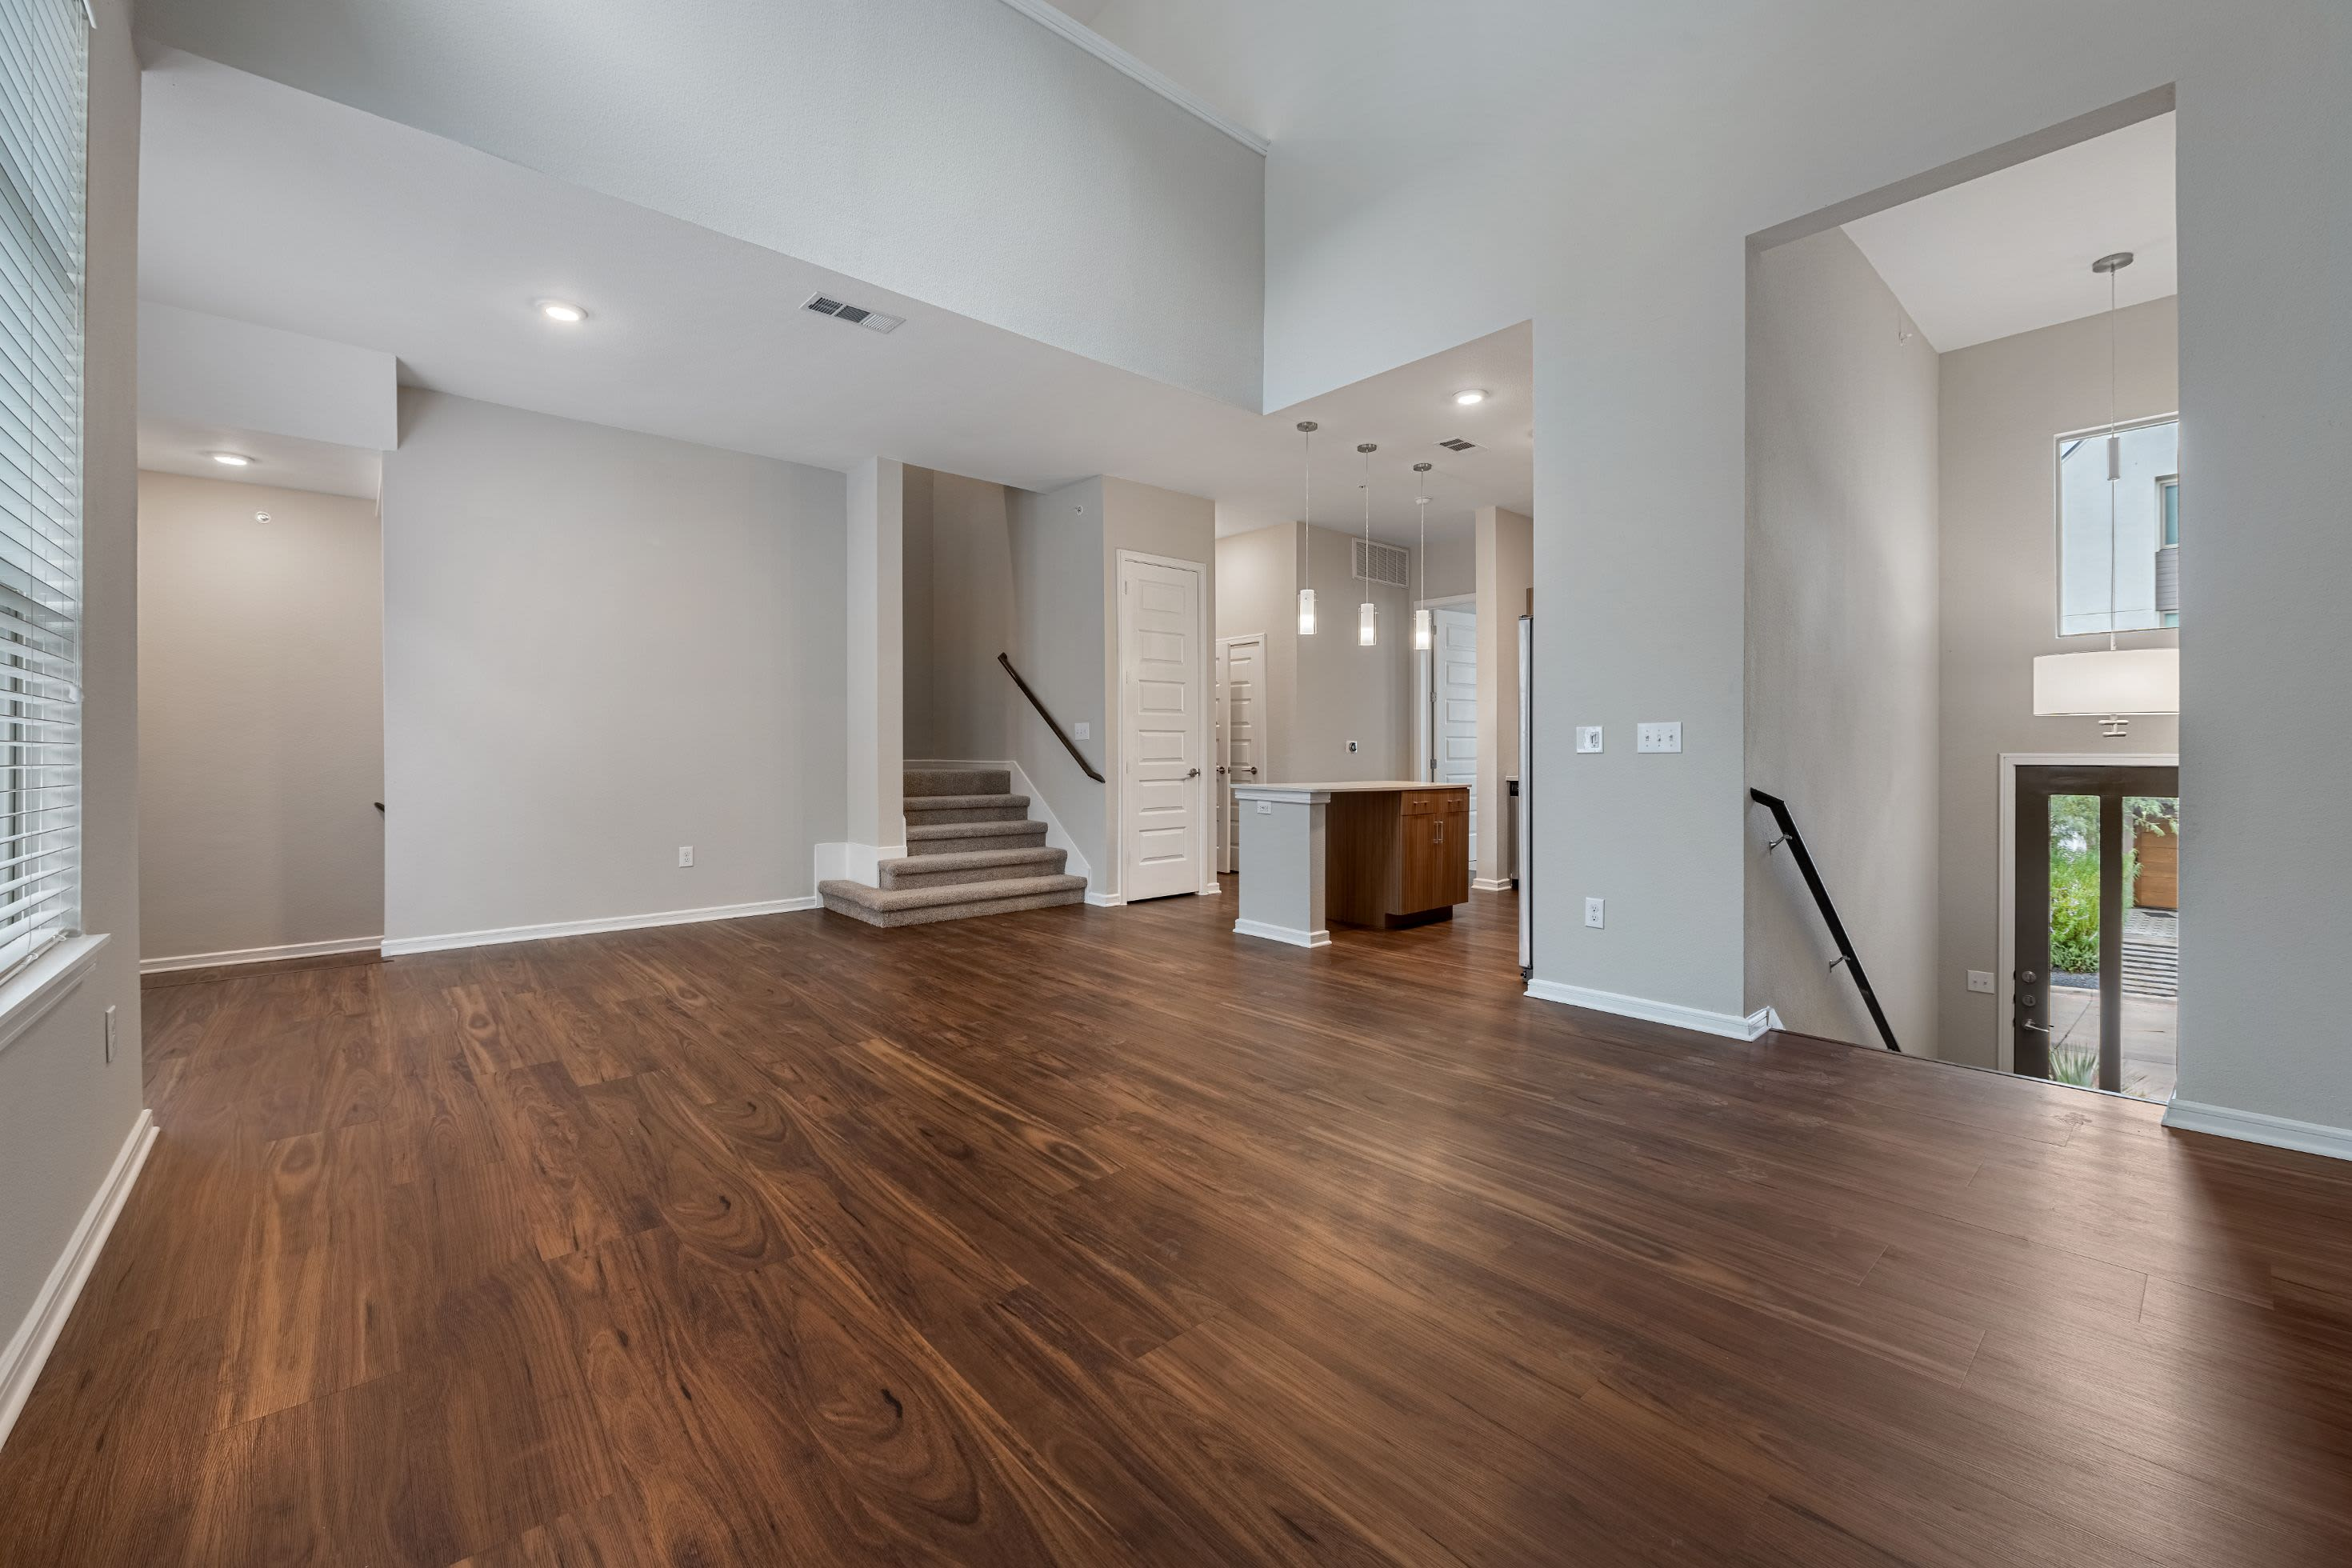 Living area with 2 staircases at Westerly 360 in Austin, Texas